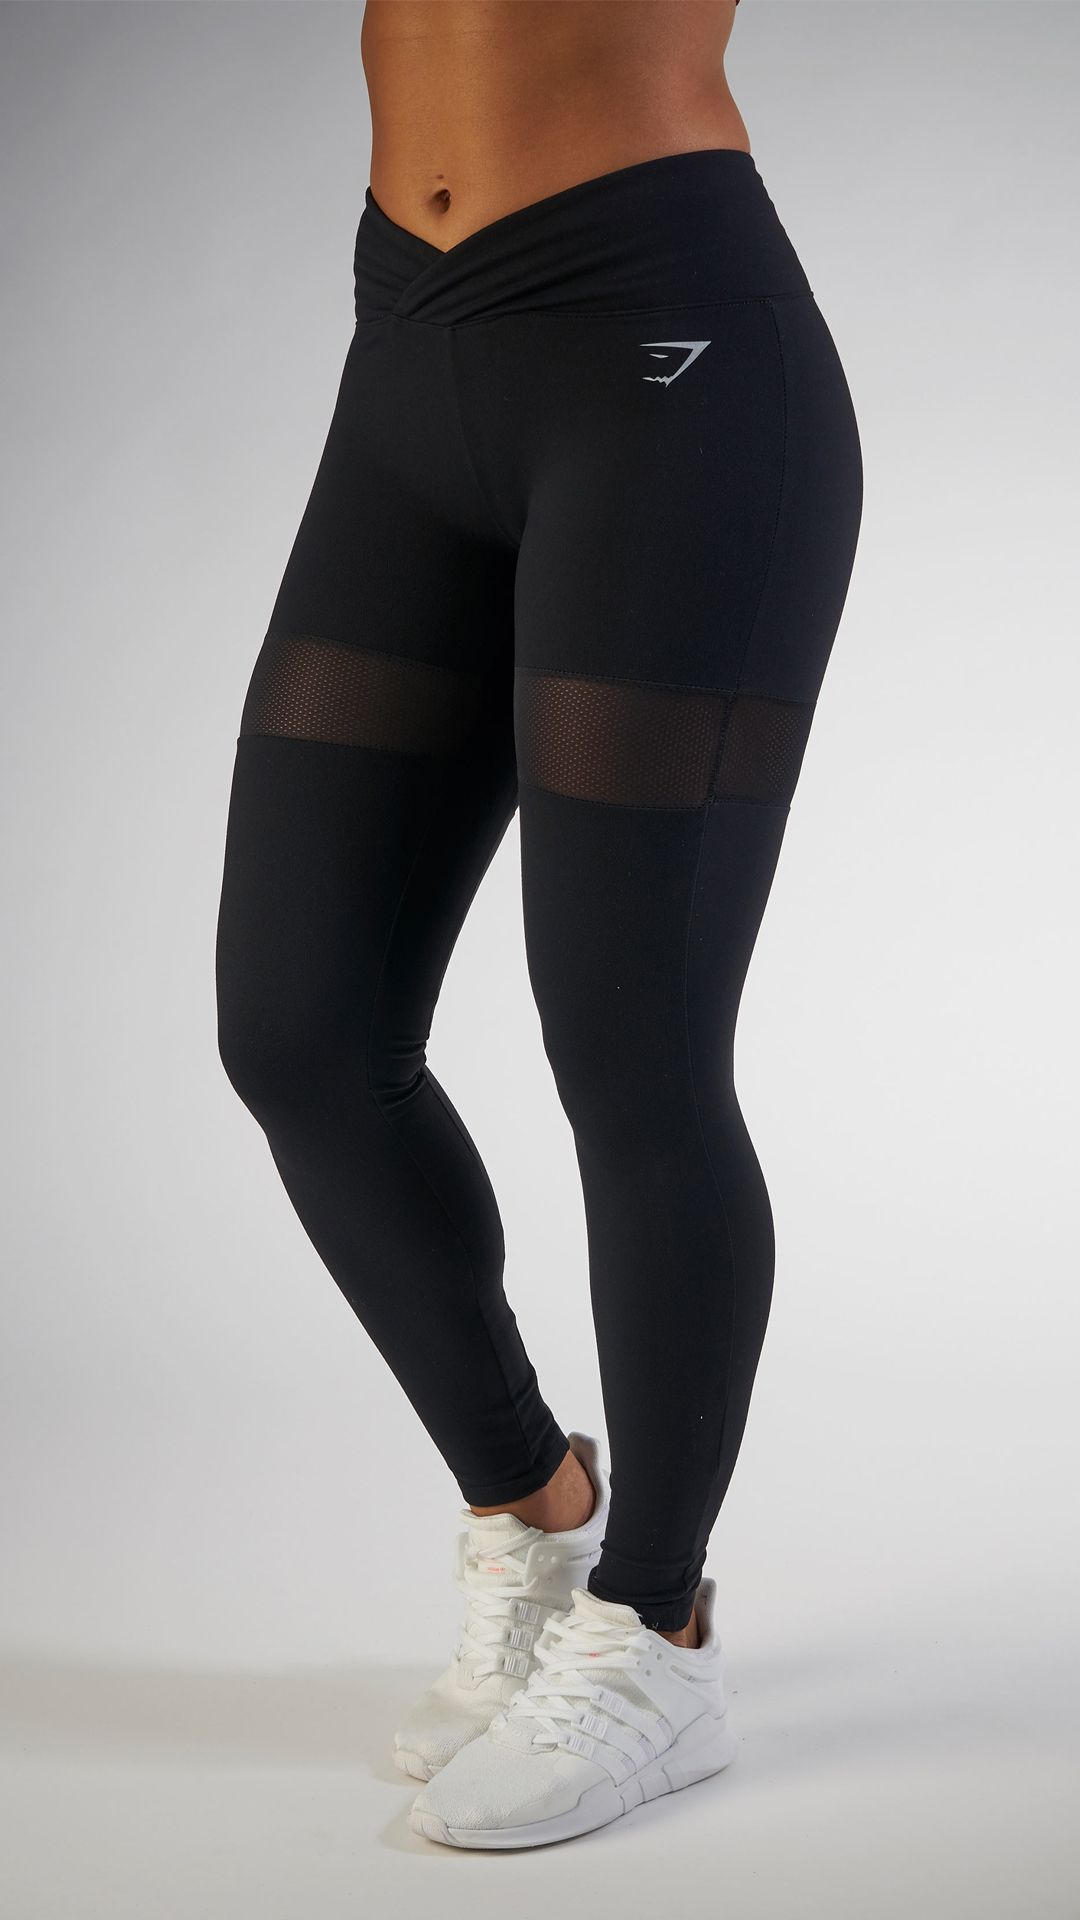 6e635884f4 Available in a range of stunning colourways, the Dynamic Leggings are  beautifully flattering from the Gymshark by Nikki Blackketter collection.